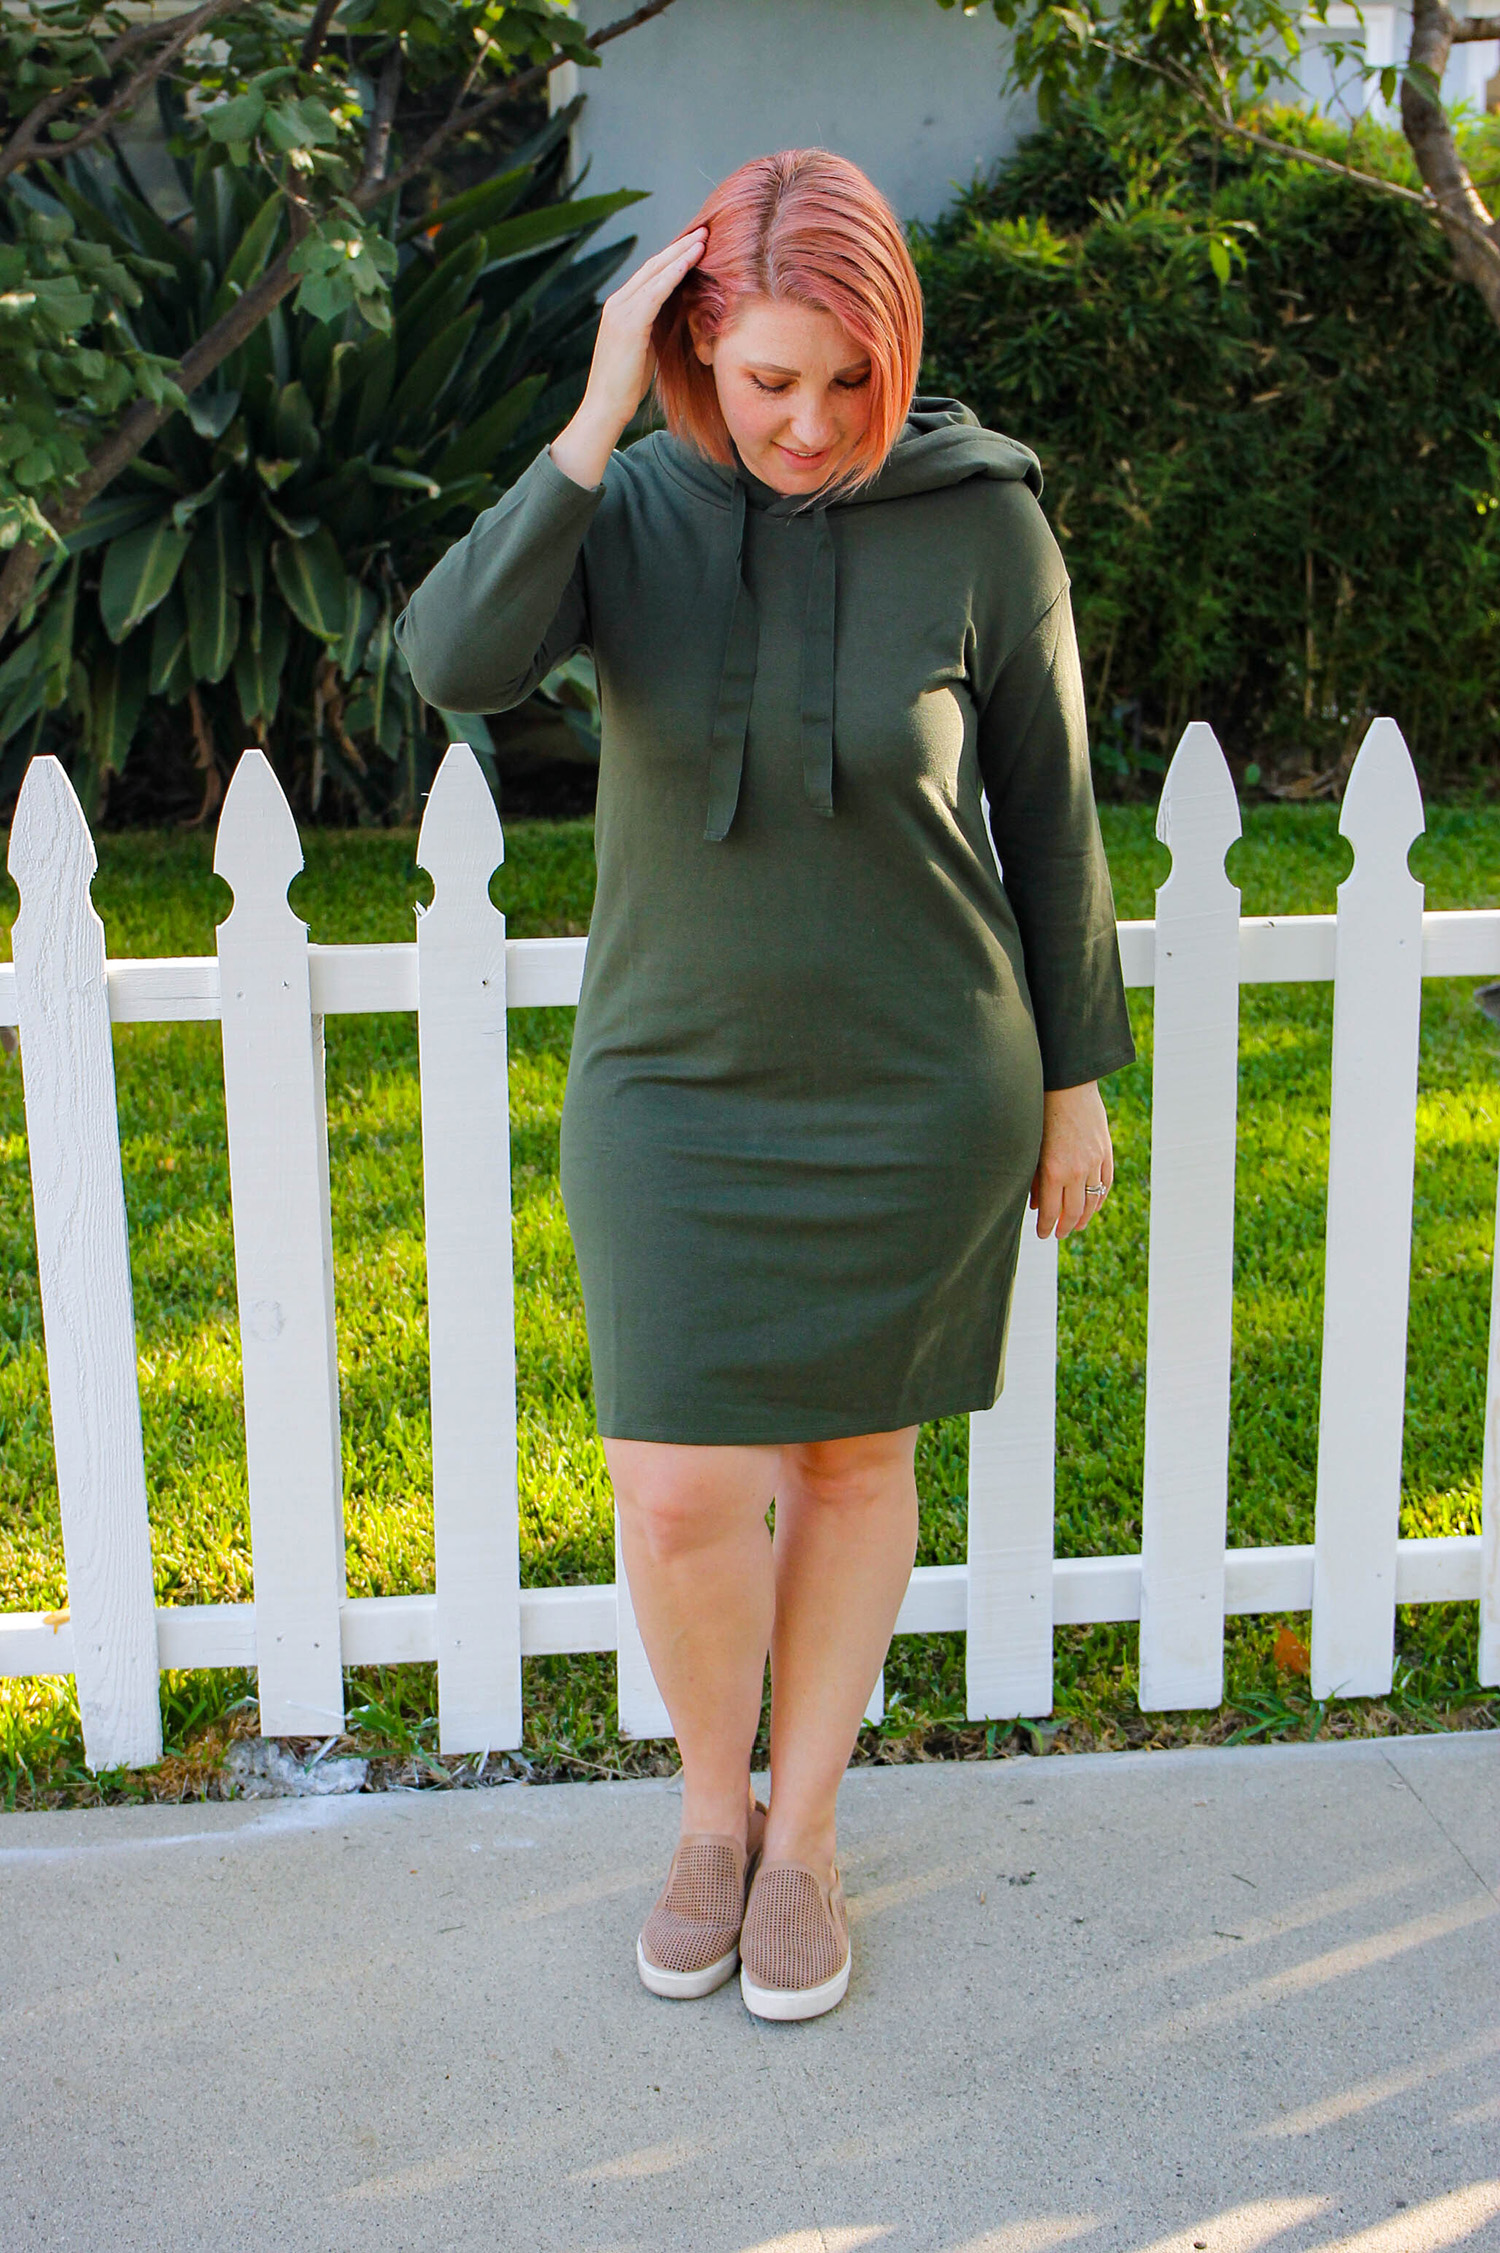 Amazon Prime Wardrobe Find: This athleisure dress is perfect for traveling or casual fall outfits, and it's only $30!